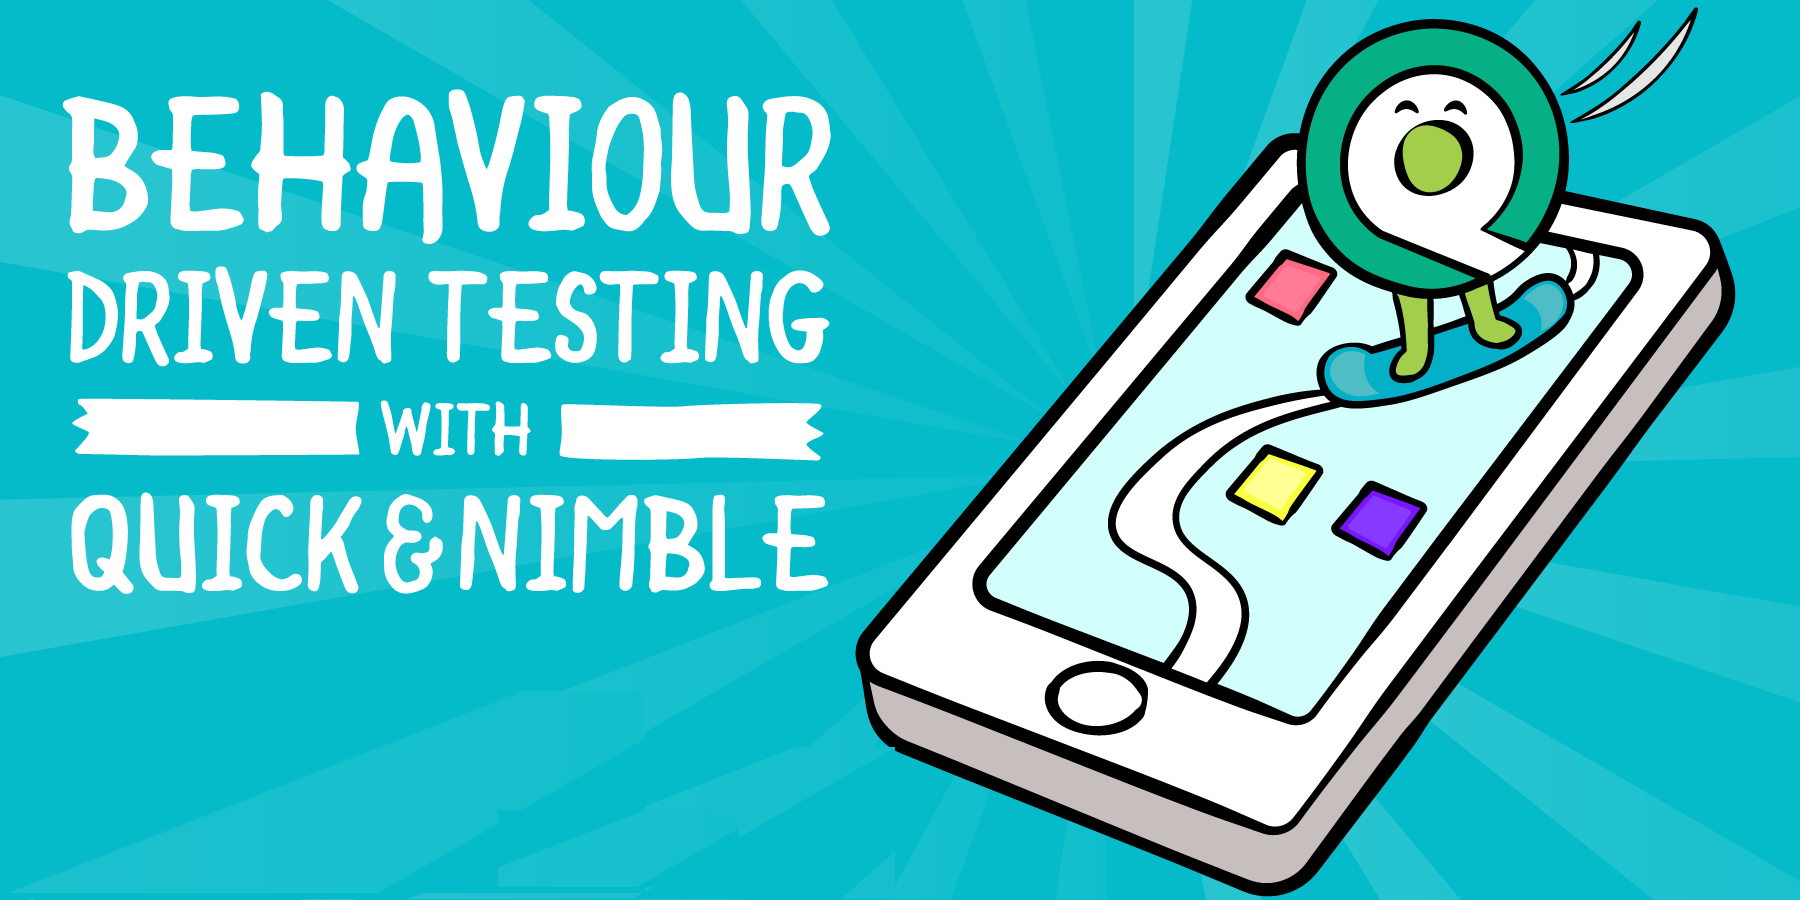 Behavior-Driven Testing for iOS using Quick and Nimble